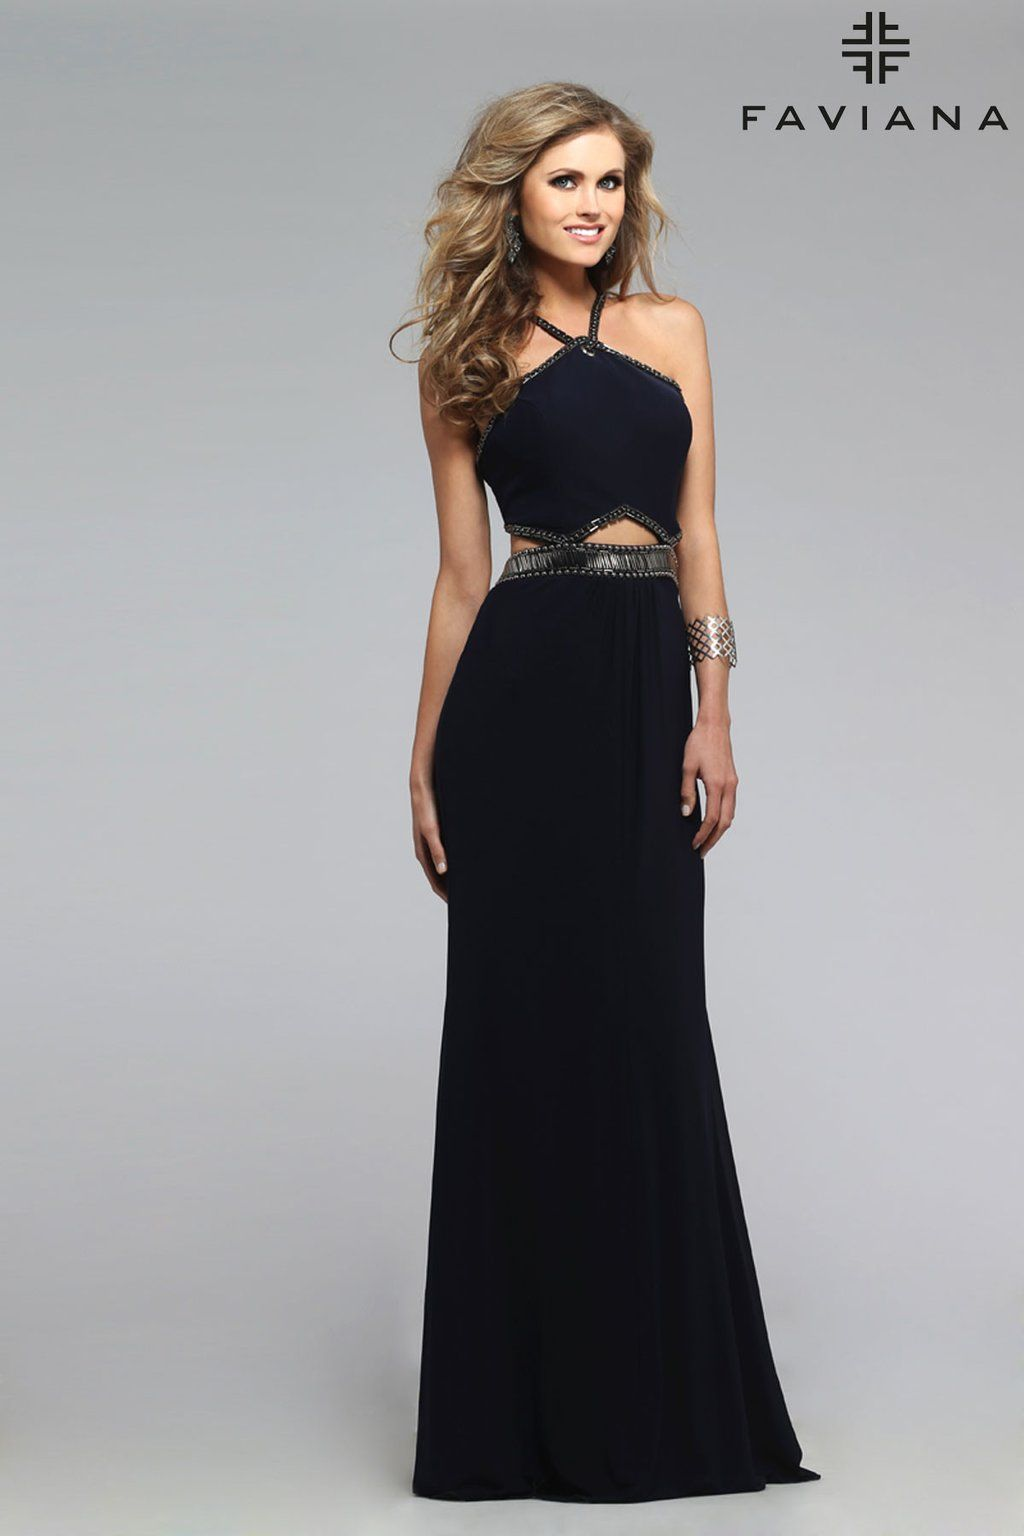 Pin on Faviana Dresses- 2018 and Below